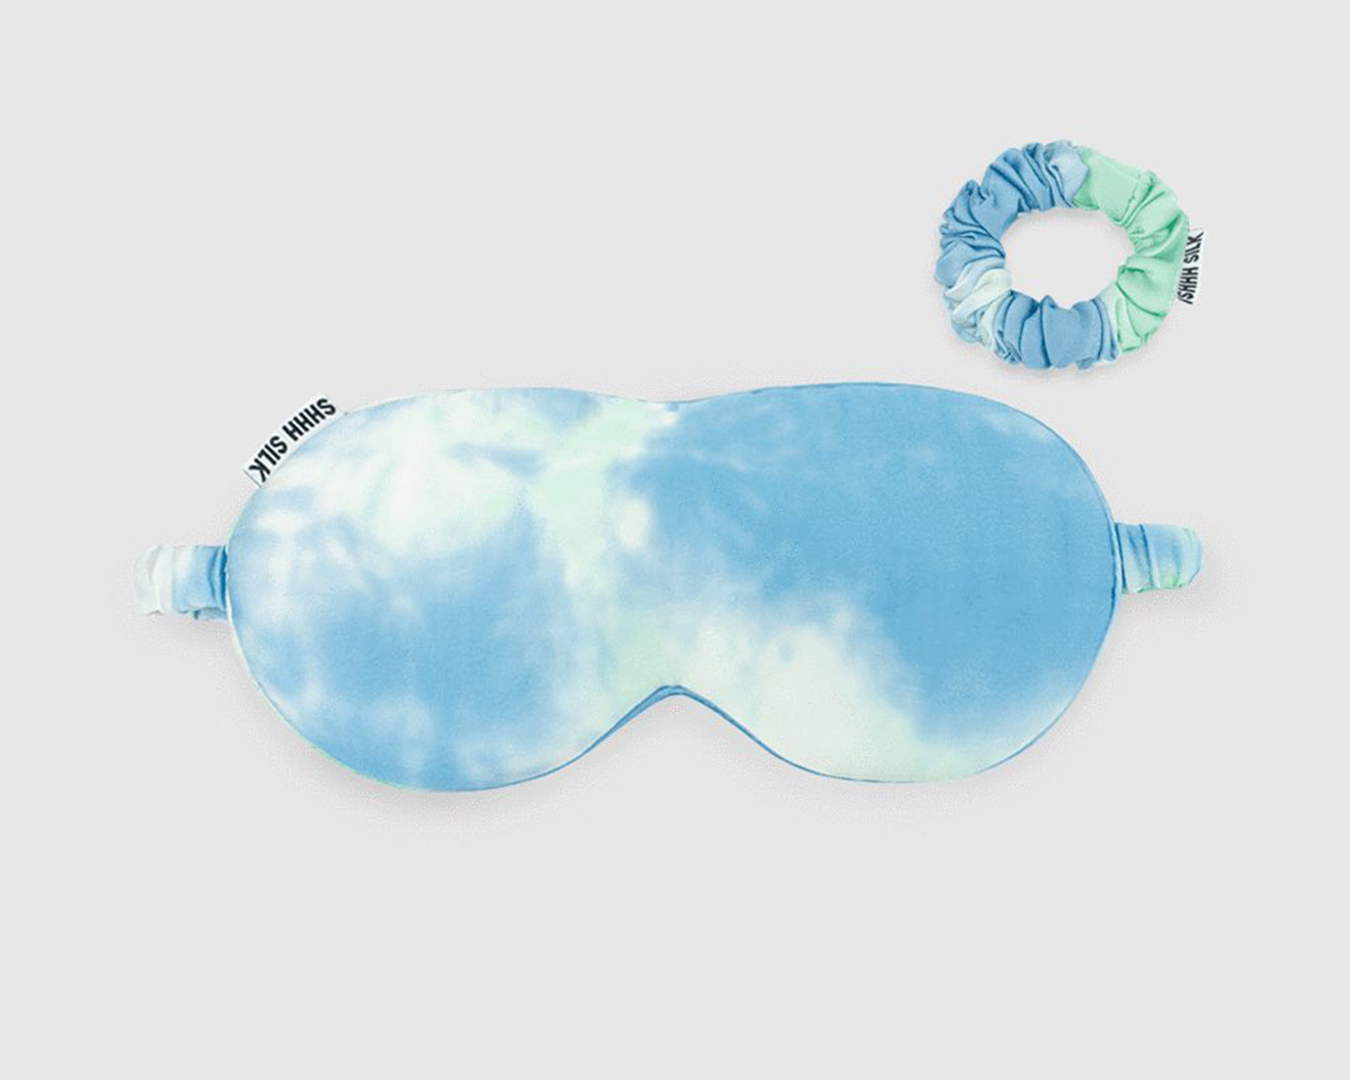 A blue tie dye eyes mask with a matching hair tye.